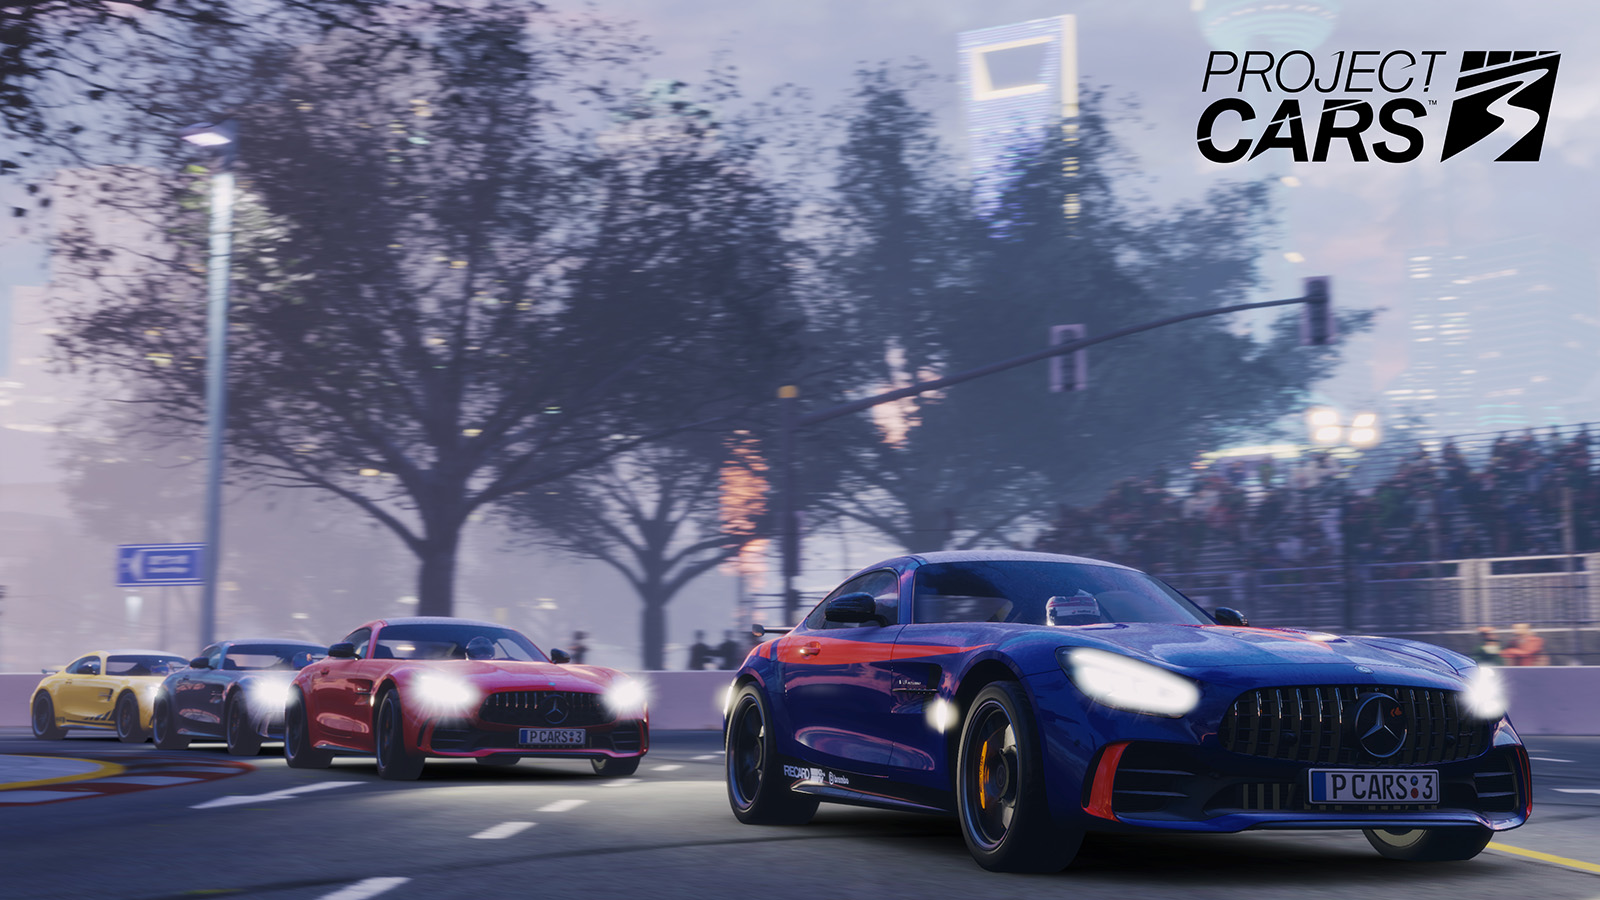 Project cars 3 track and car list